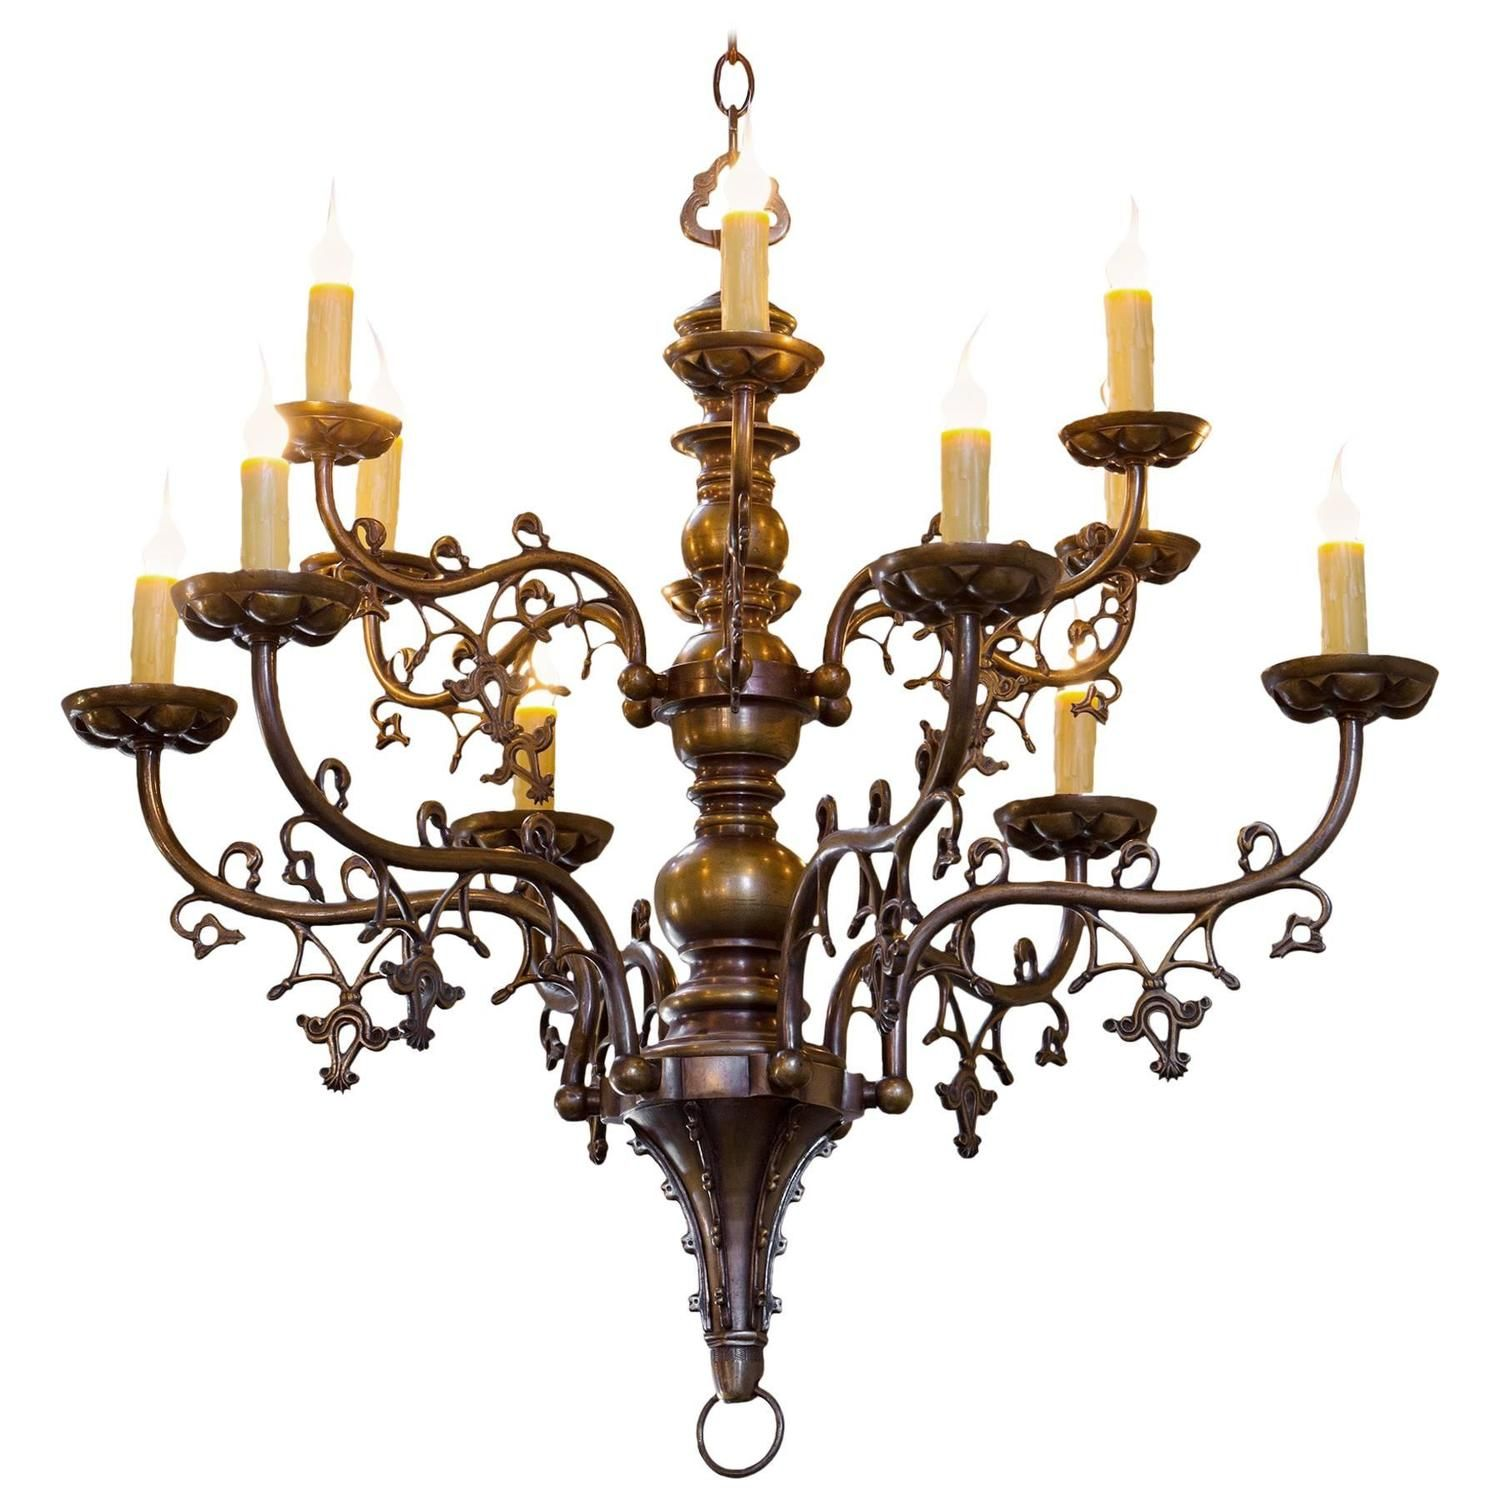 Belgian gothic style bronze chandelier with twelve arms circa 1900 antique belgian gothic style bronze chandelier with twelve arms circa 1900 aloadofball Gallery